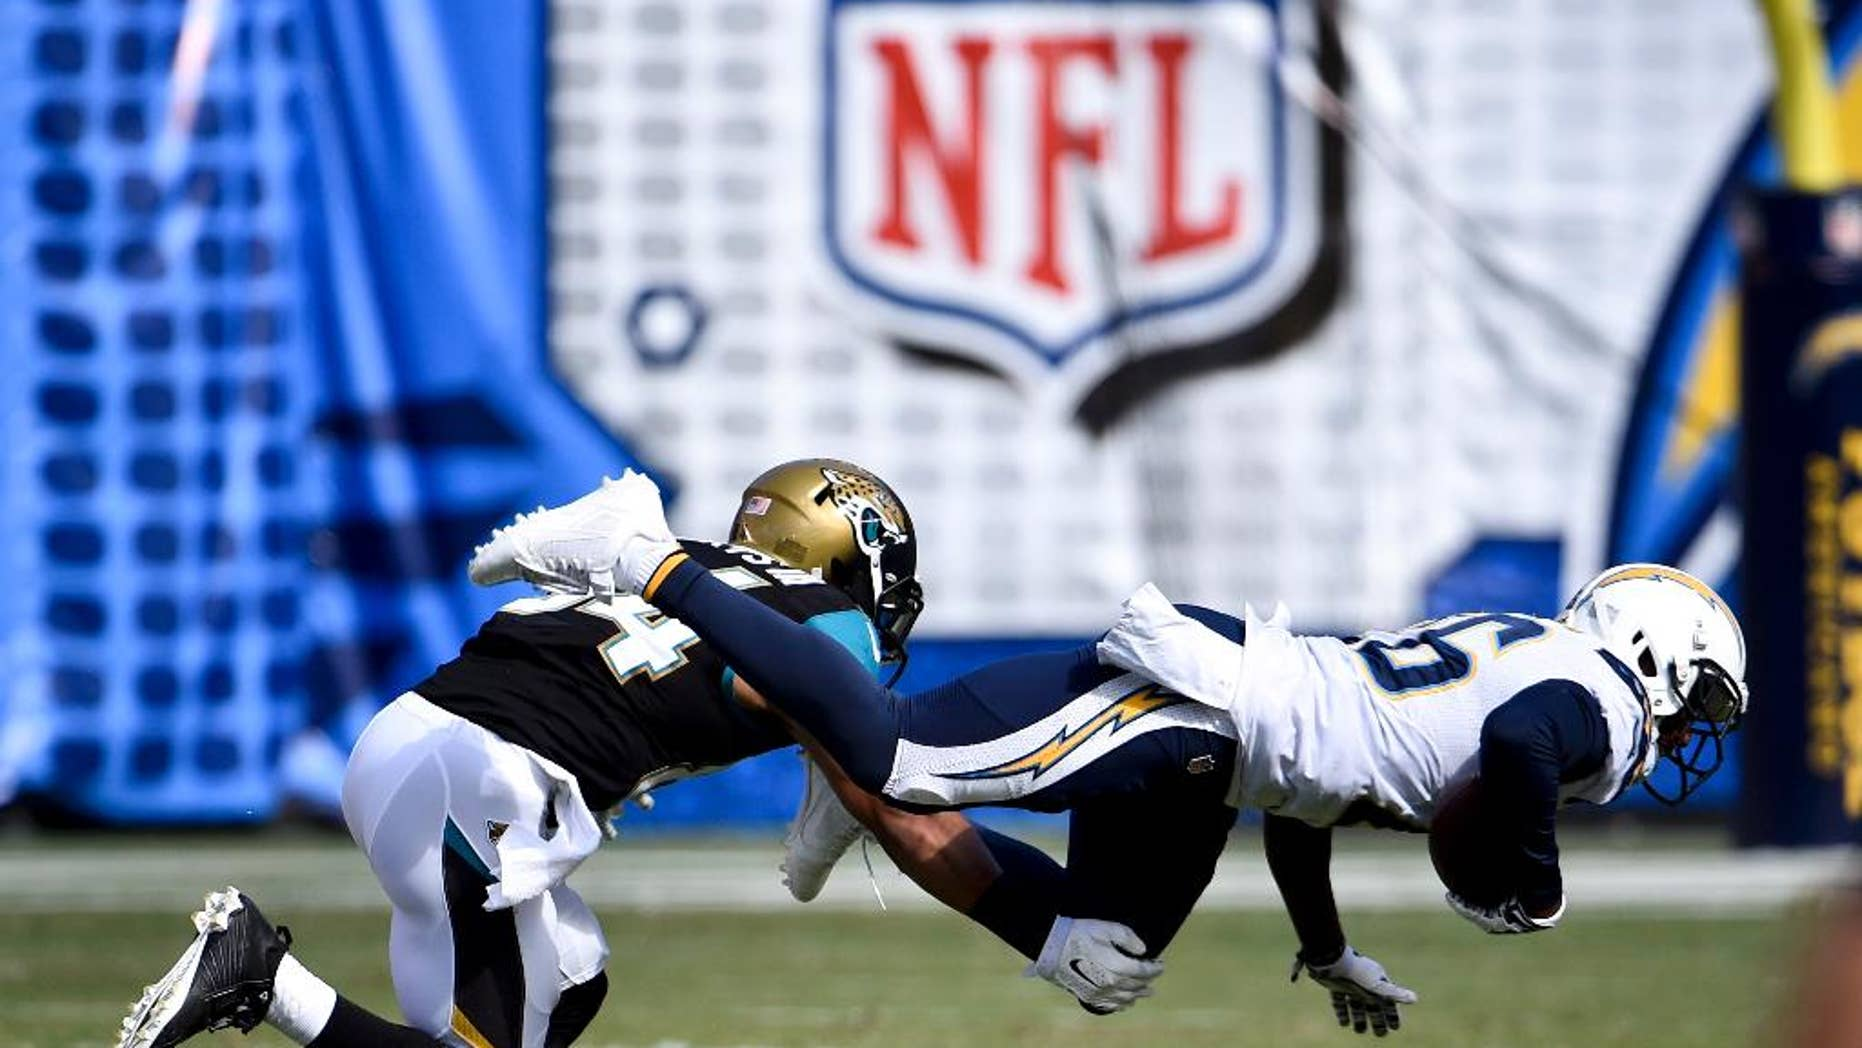 San Diego Chargers cornerback Brandon Flowers intercepts a pass in front of Jacksonville Jaguars wide receiver Cecil Shorts during the second half of an NFL football game Sunday, Sept. 28, 2014, in San Diego. (AP Photo/Denis Poroy)